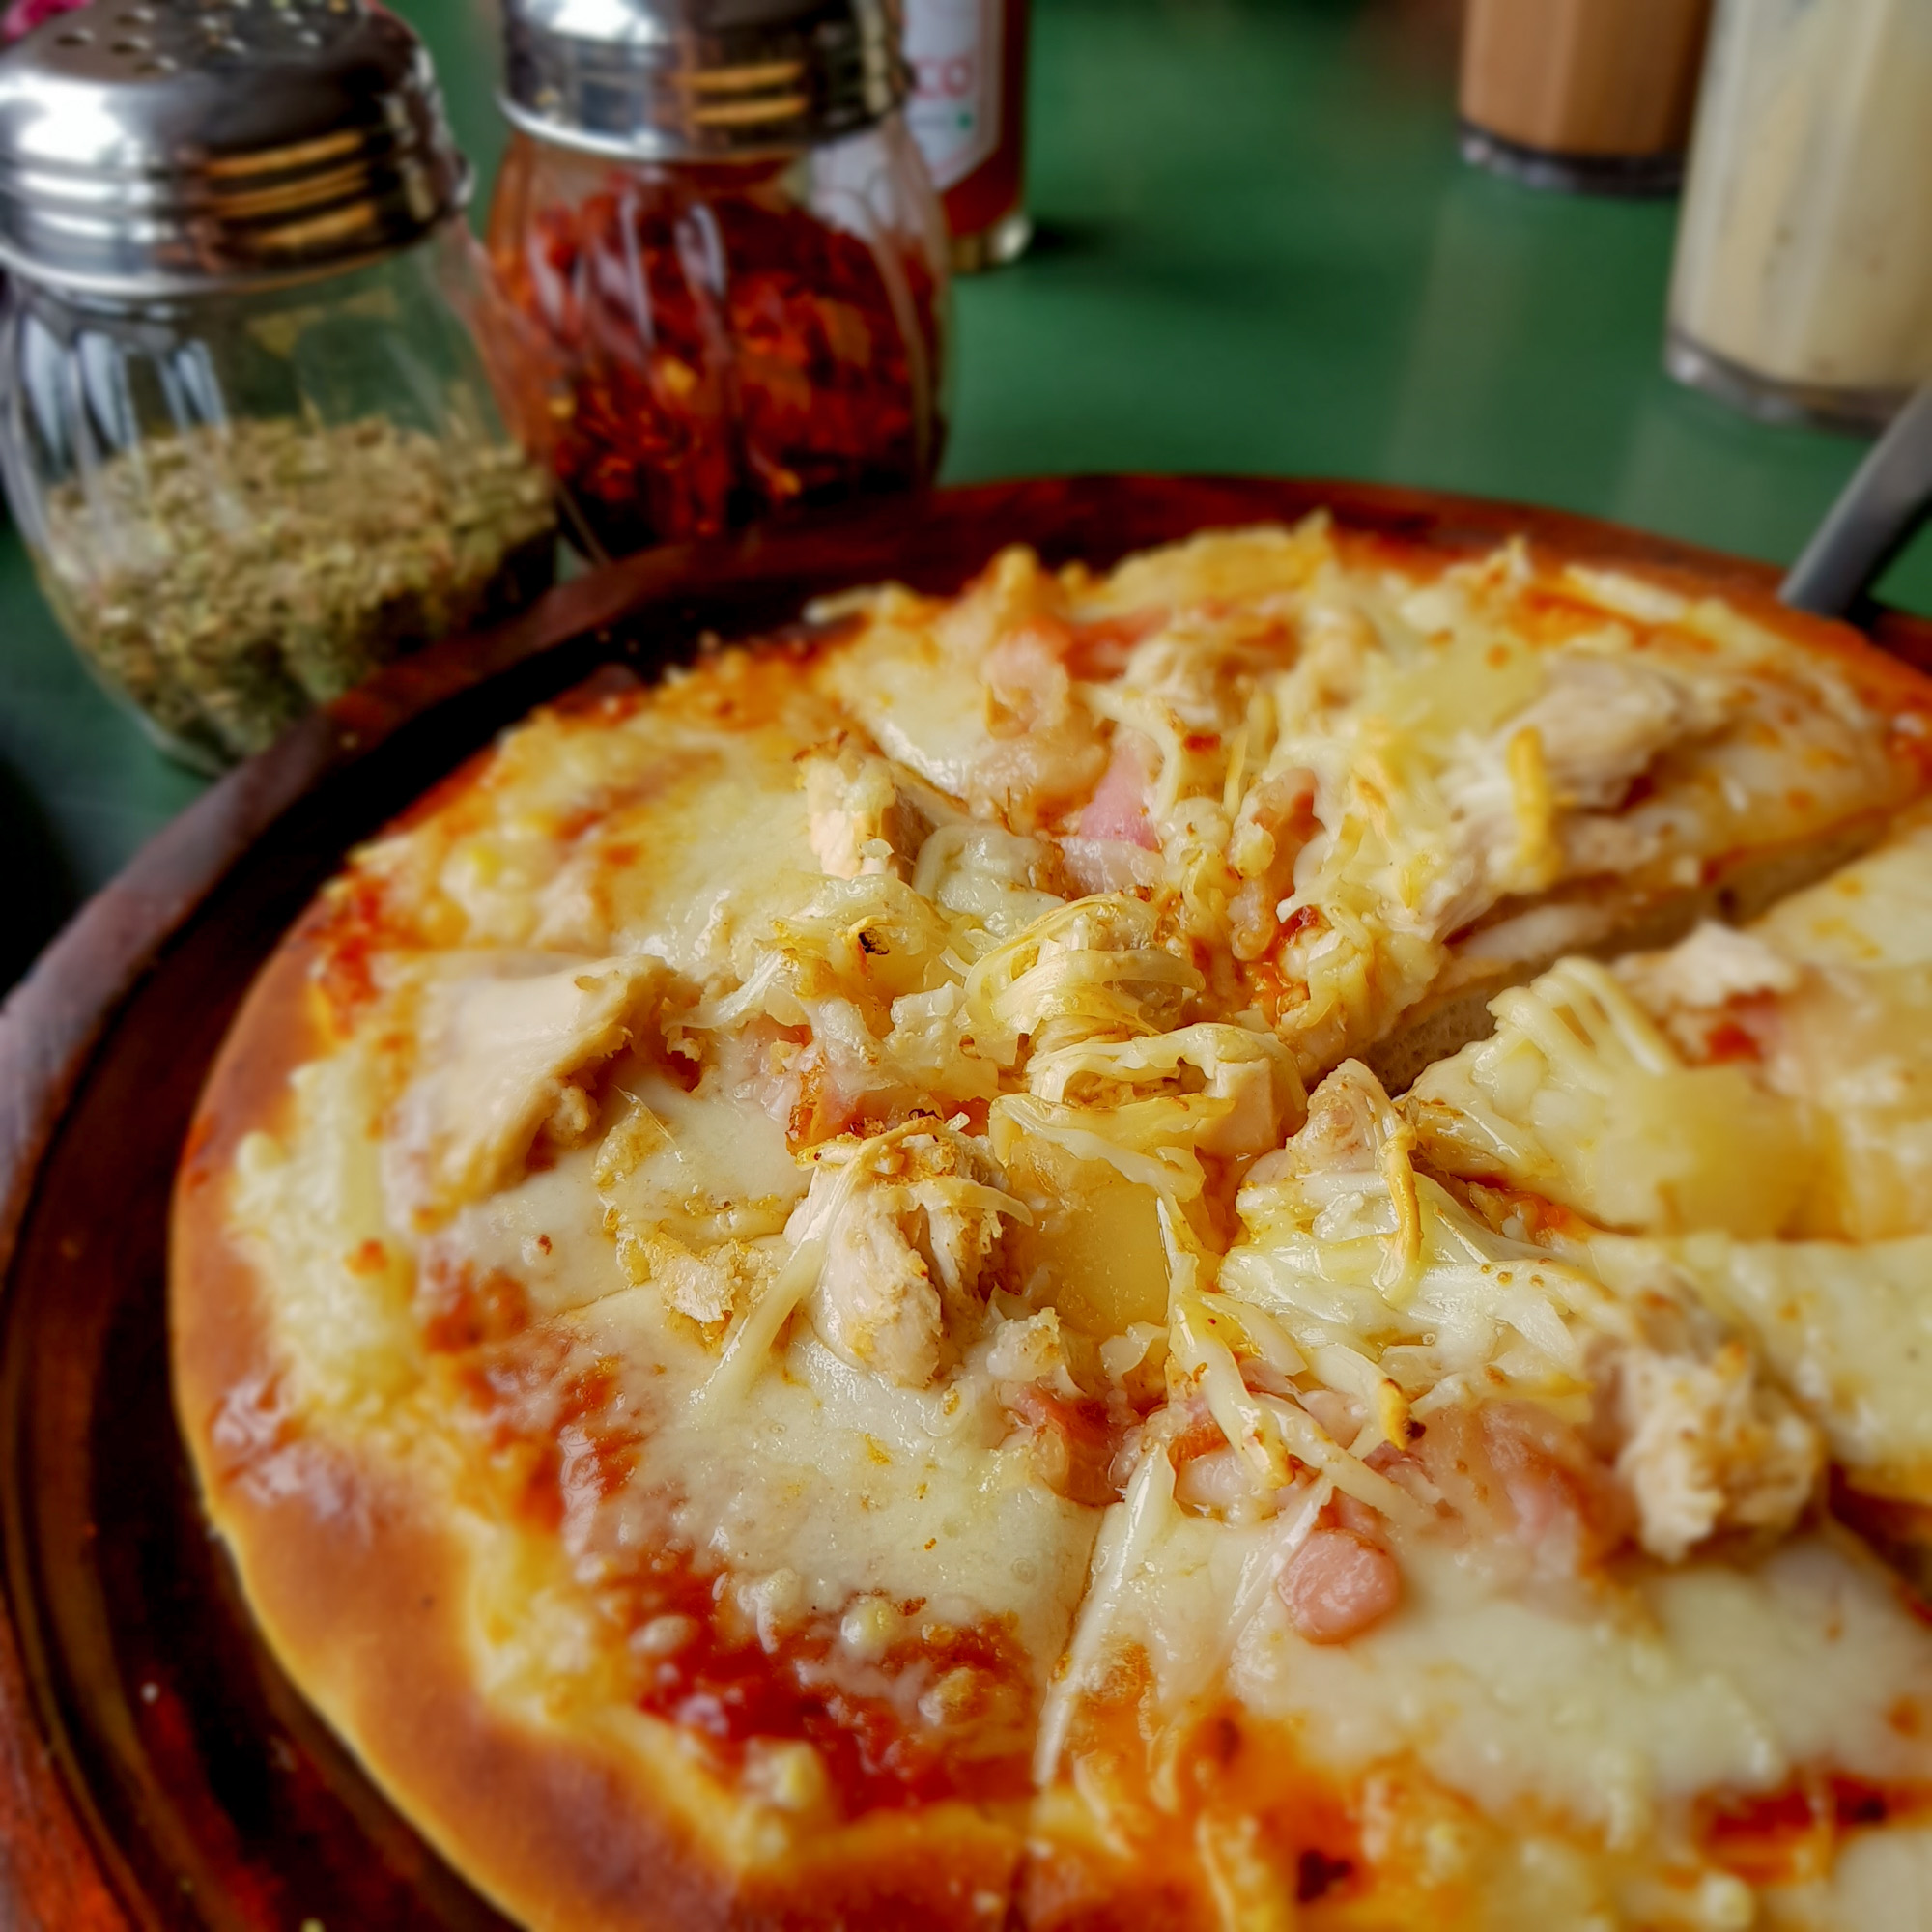 Chicken, ham and pineapple pizza at Baker's Cafe, Gangtok